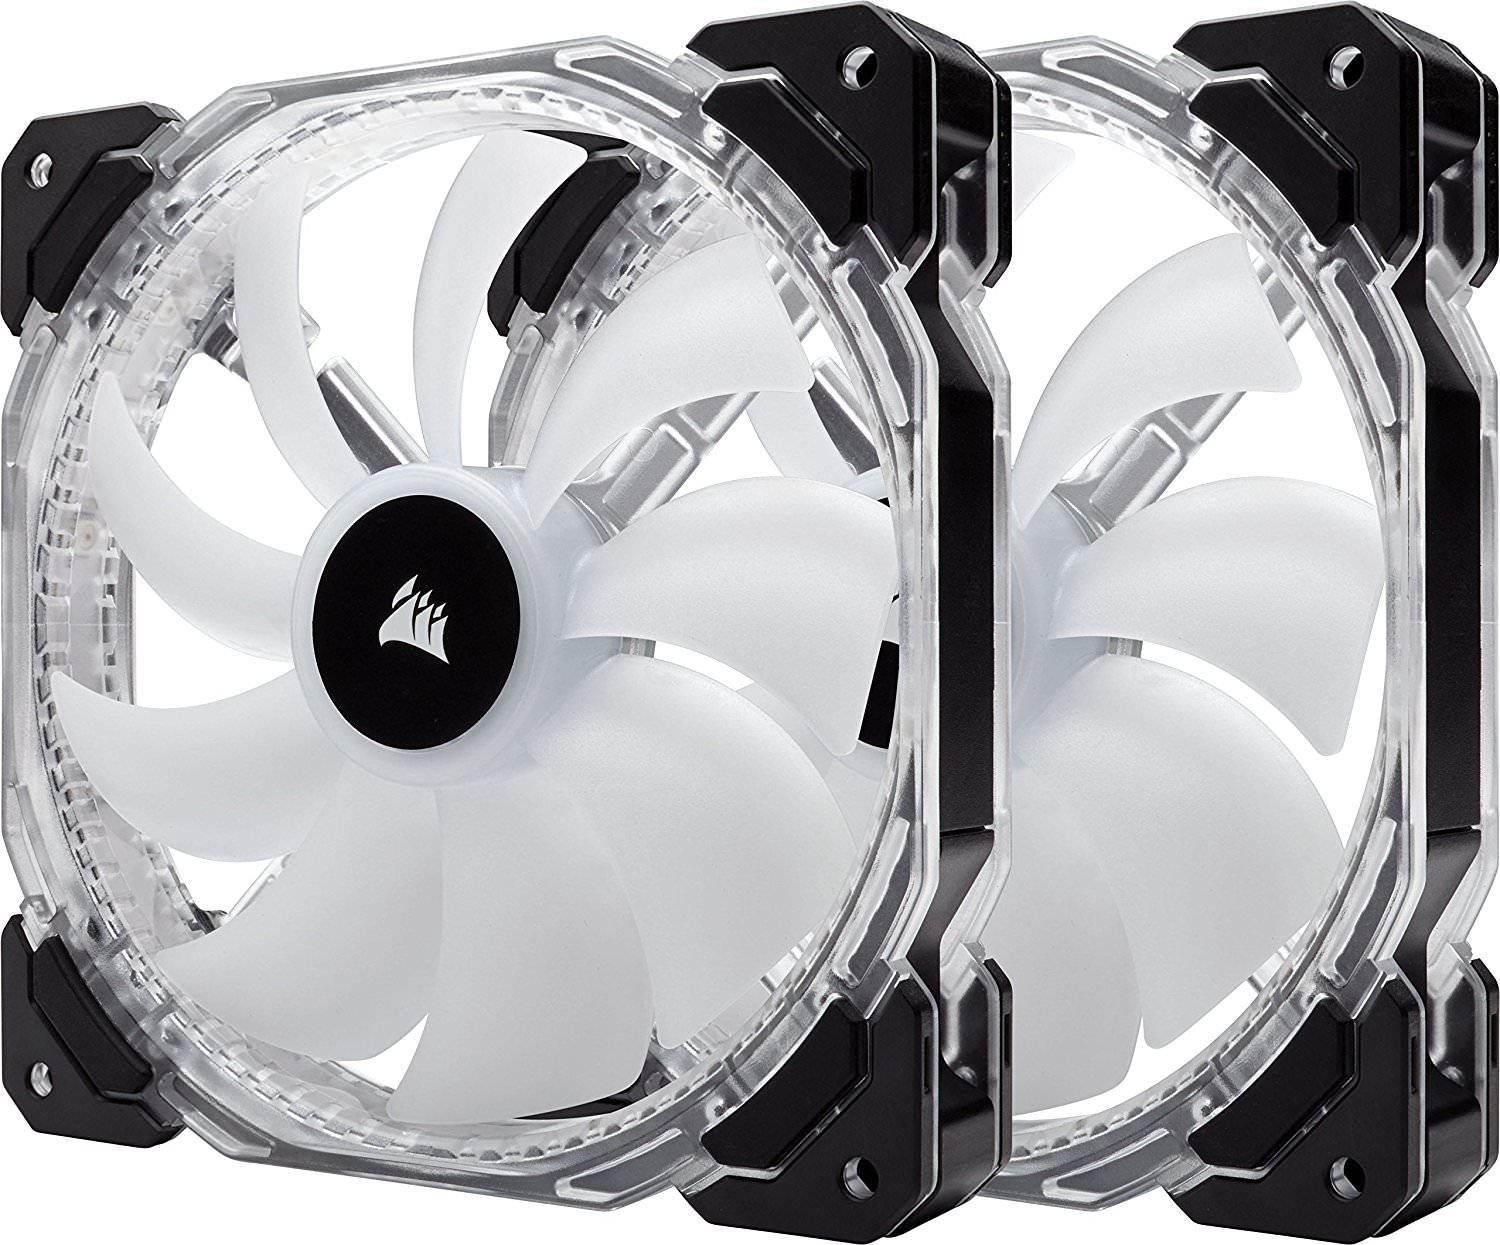 CORSAIR HD Series HD140 RGB LED 140mm High Performance RGB LED PWM Dual Fans with Controller Cooling... by Corsair